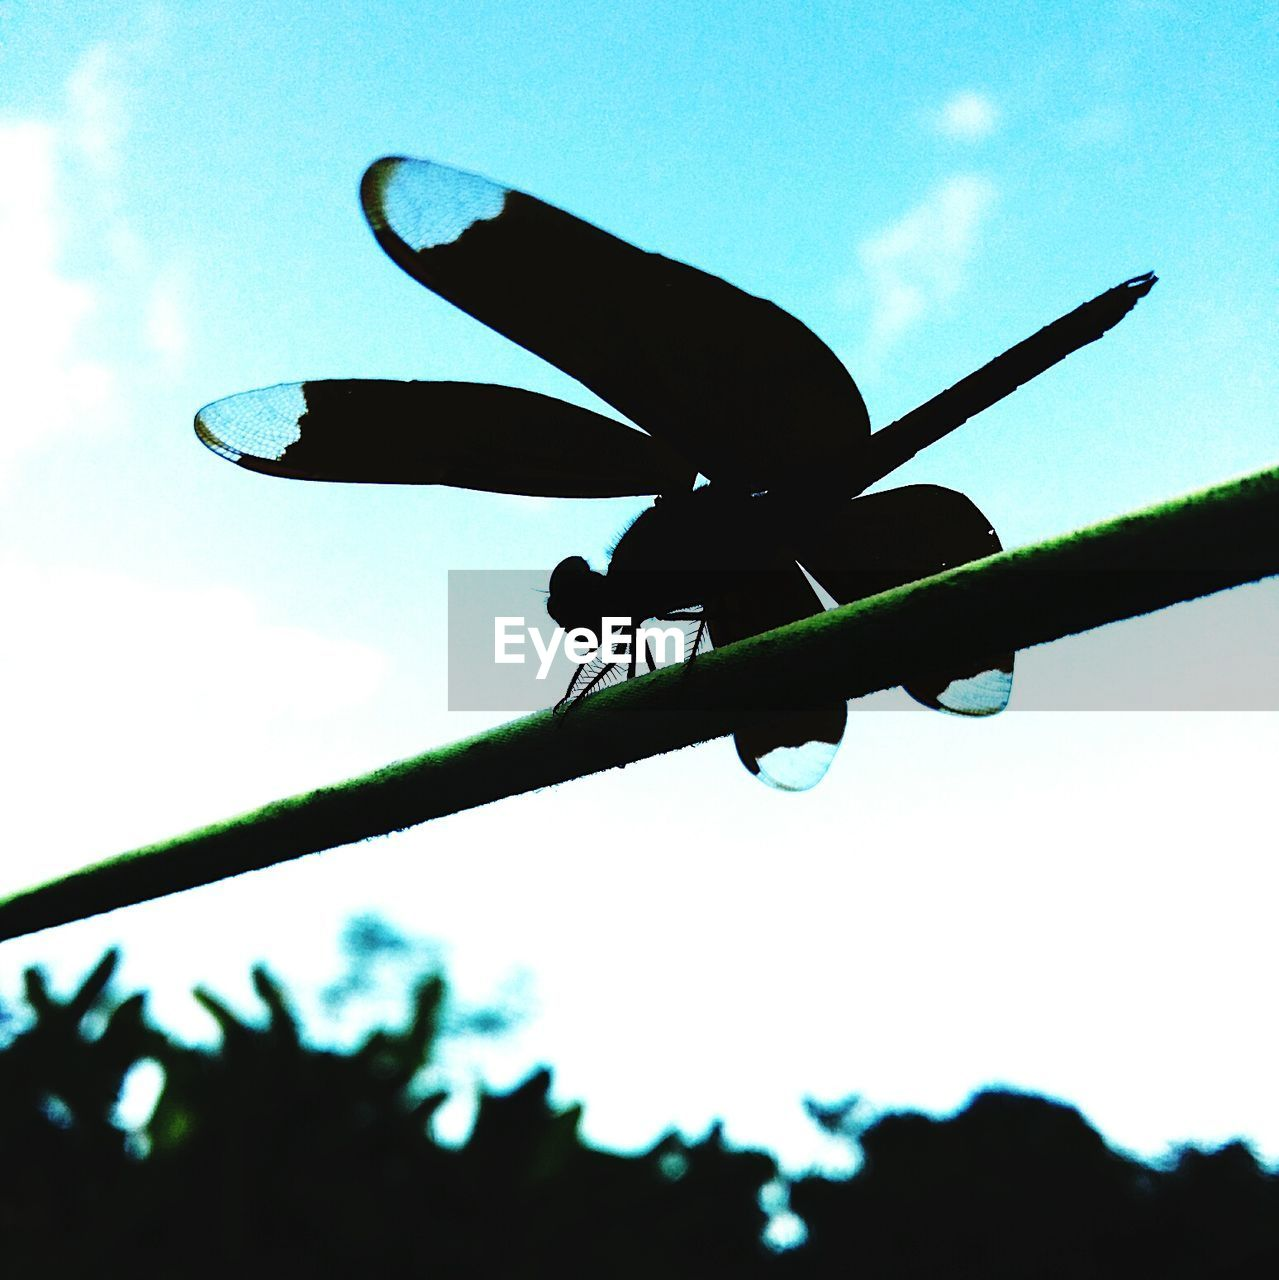 low angle view, silhouette, sky, day, outdoors, close-up, no people, nature, animal themes, flying